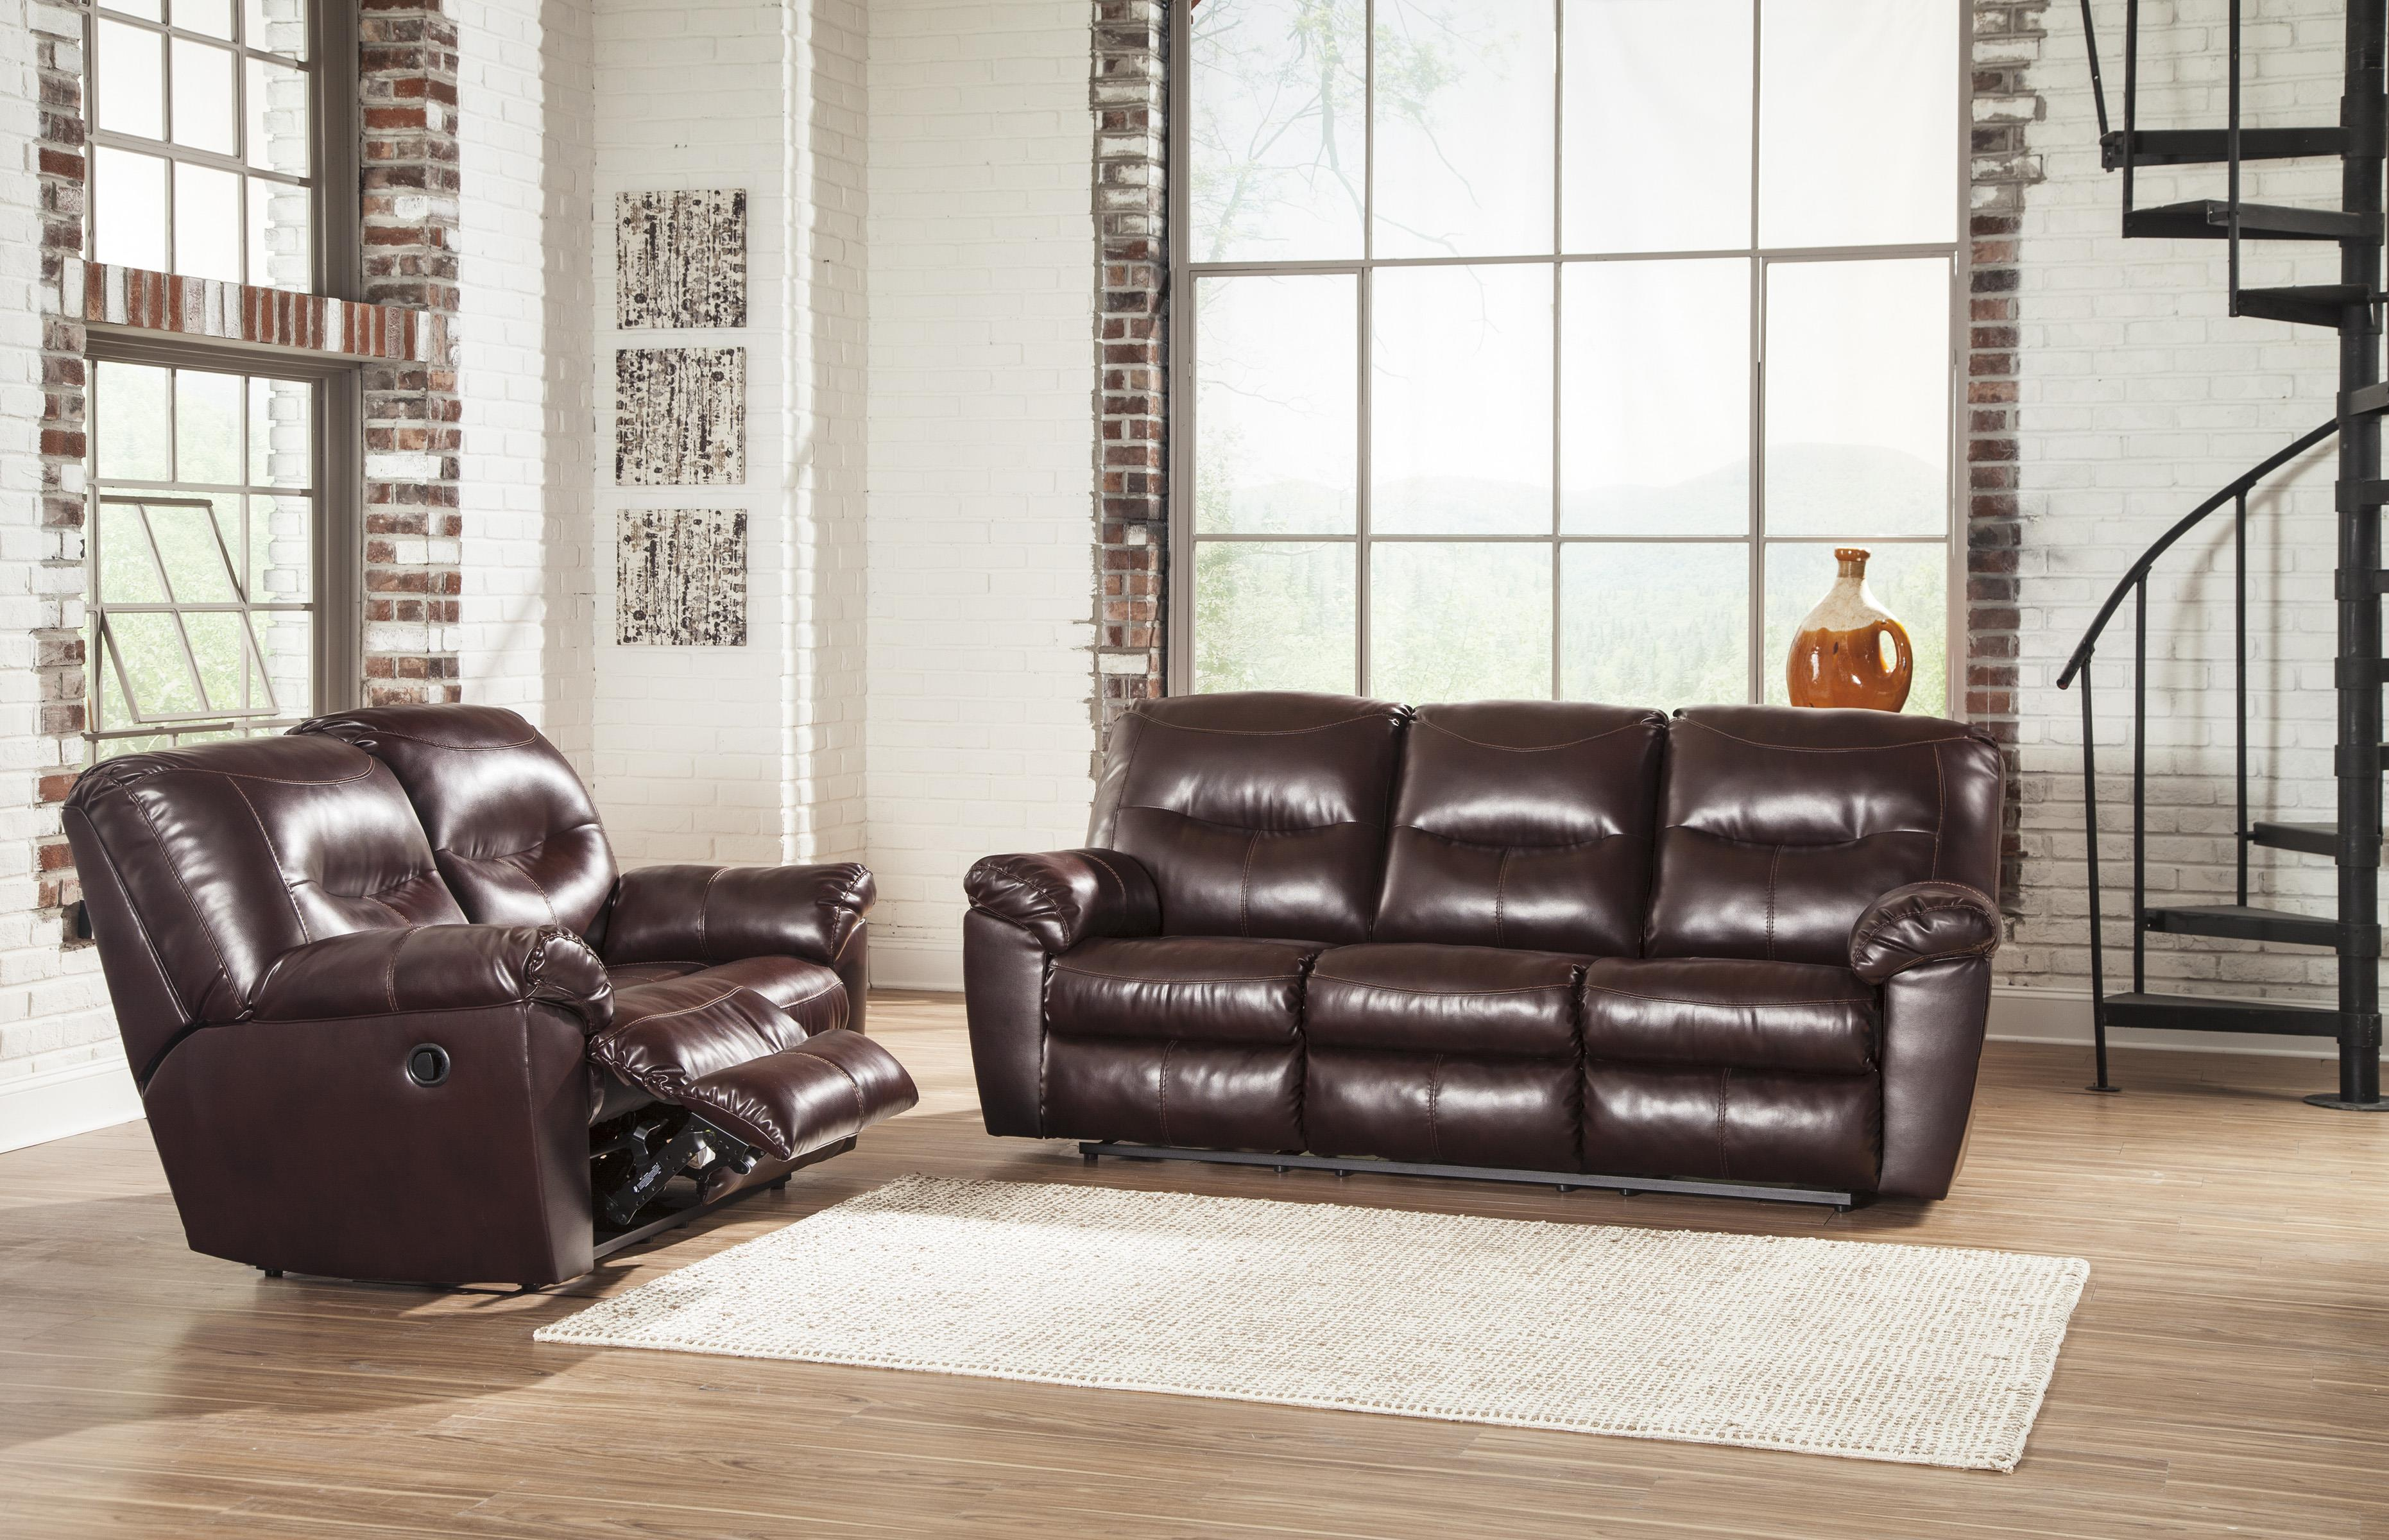 Signature Design by Ashley Kilzer DuraBlend® Reclining Living Room Group - Item Number: 84702 Living Room Group 1